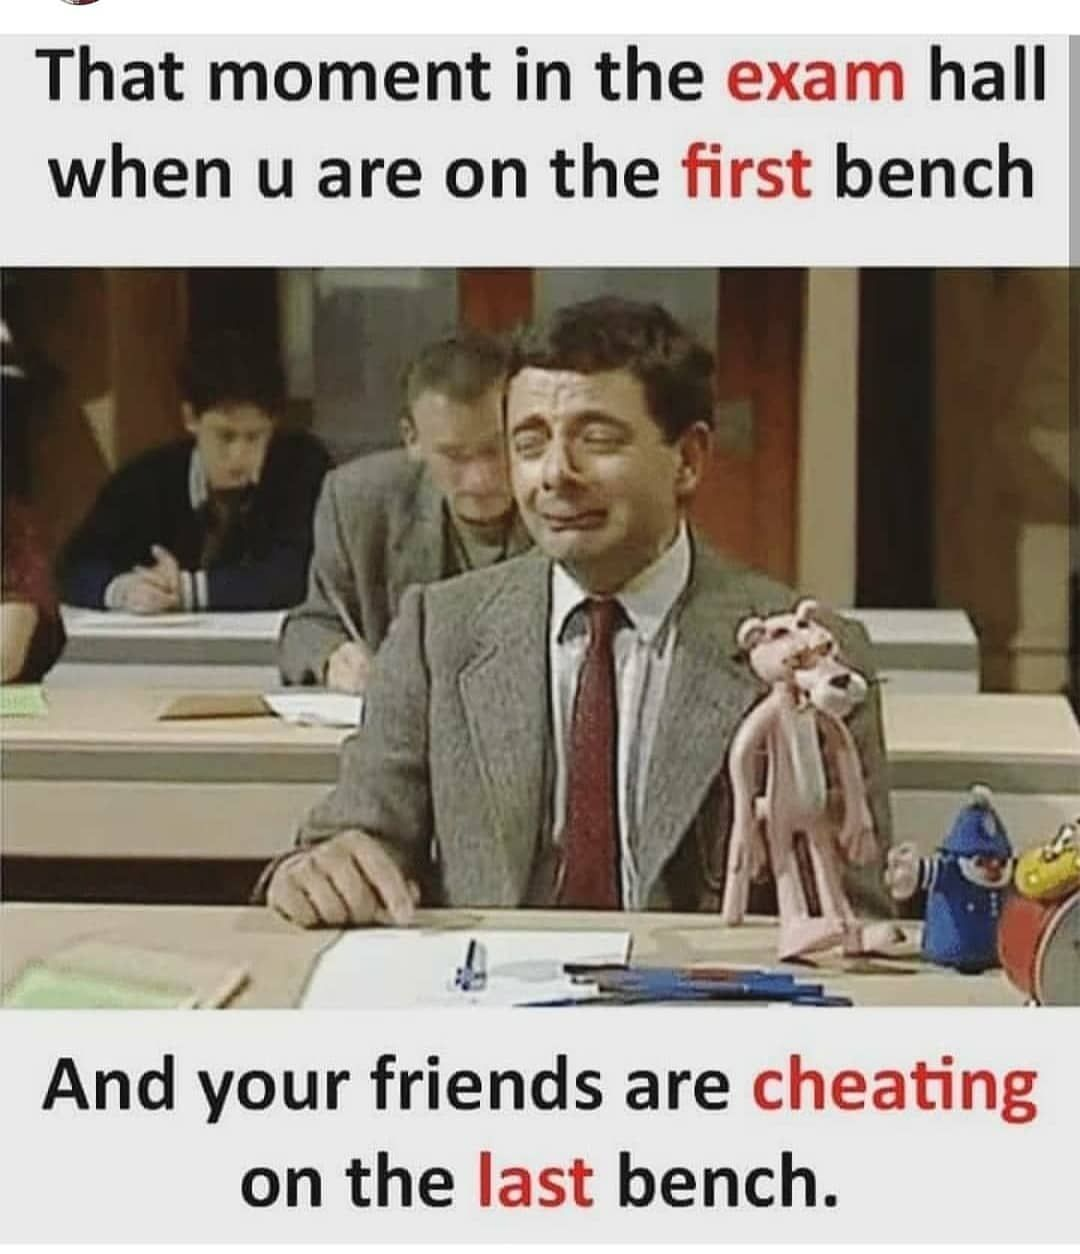 No Cheating Follow Topstudyworld On Instagram For Study Students And Education Memes Friday Quotes Funny School Life Images Funny Quotes